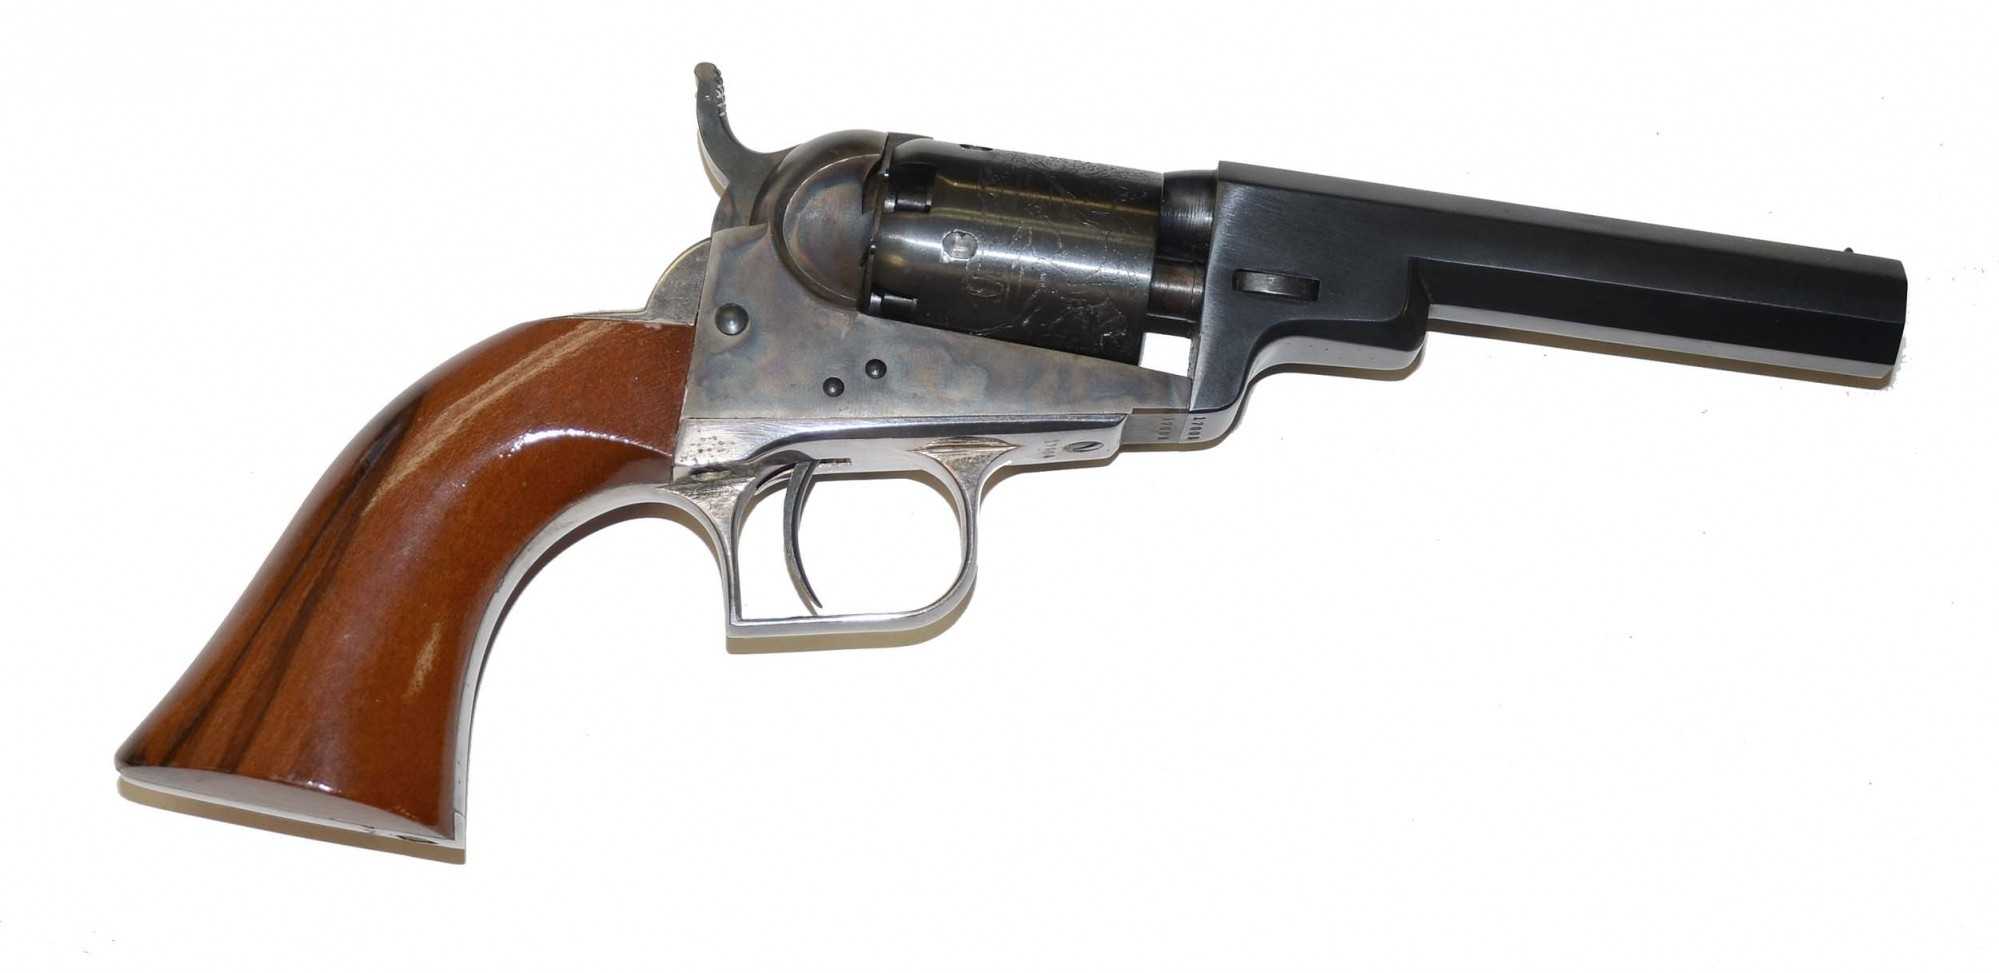 MINT CONDITION REPRODUCTION OF THE COLT BABY DRAGOON REVOLVER WITH THE ORIGINAL BOX